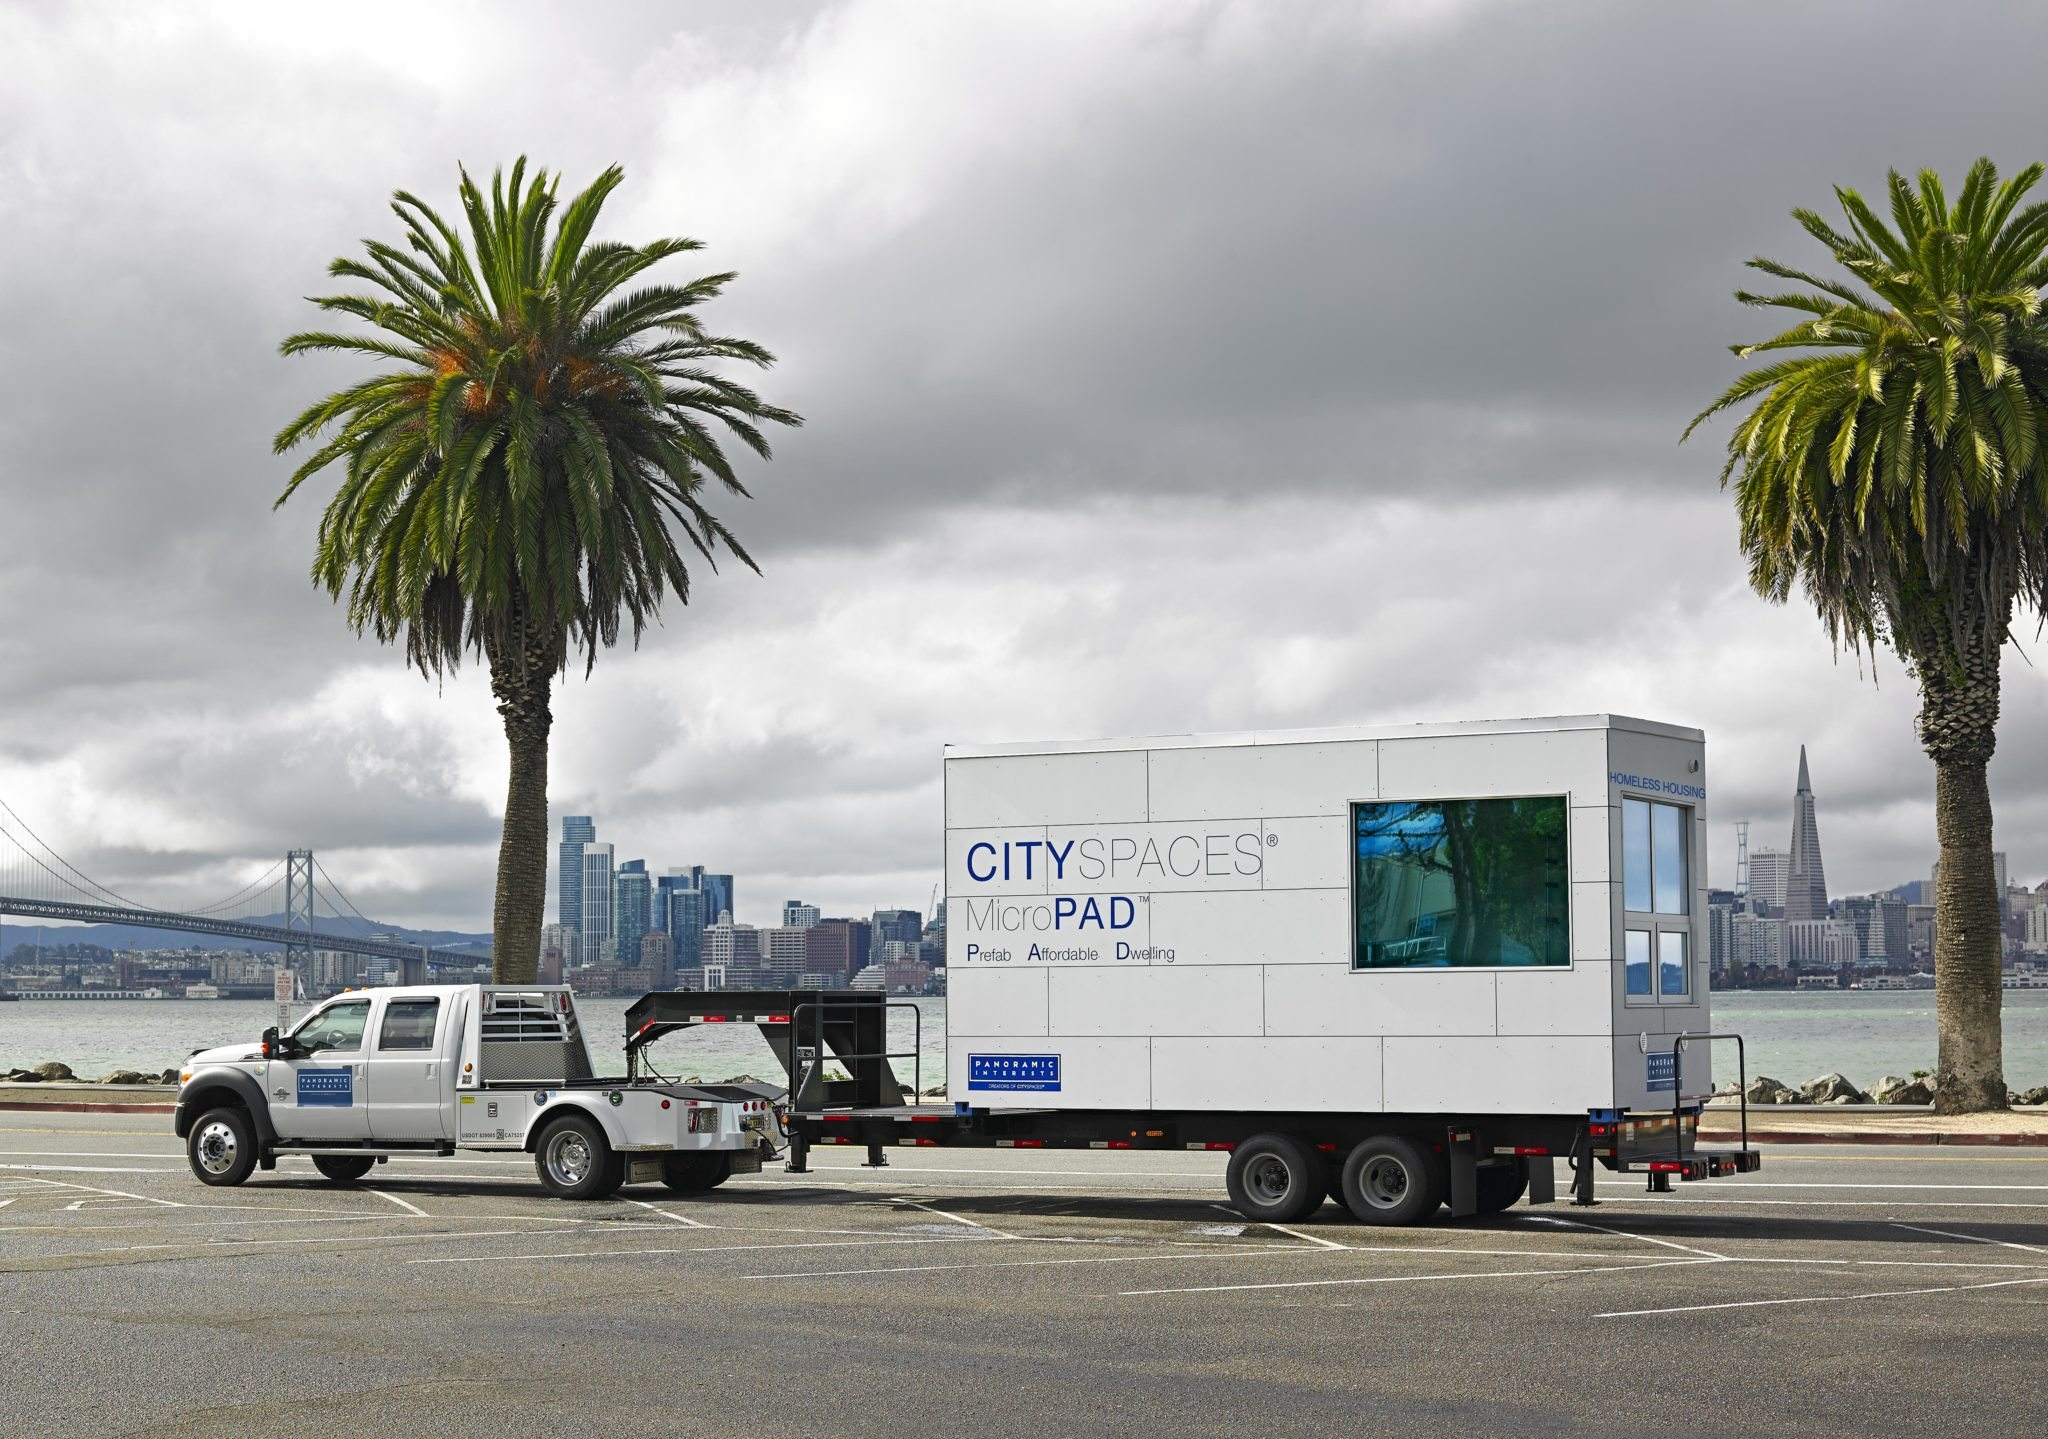 techies solve affordable housing problem with sleep pods